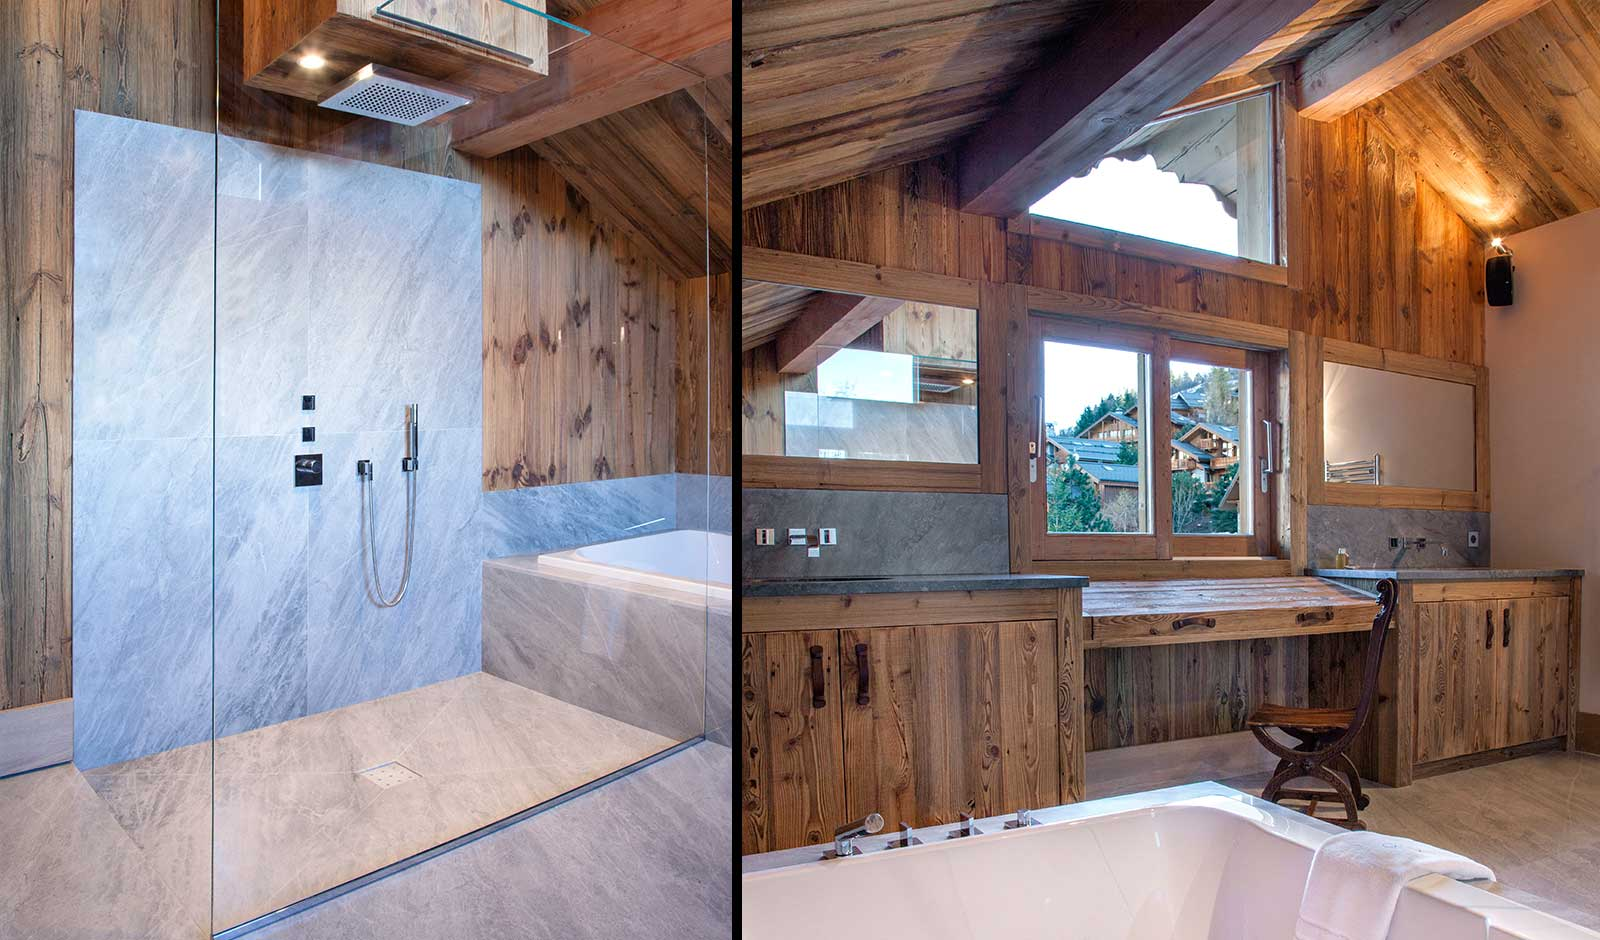 chalet-mont-tremblant-8-atelier-crea-and-co-architecte-design-project-manager-meribel-savoie